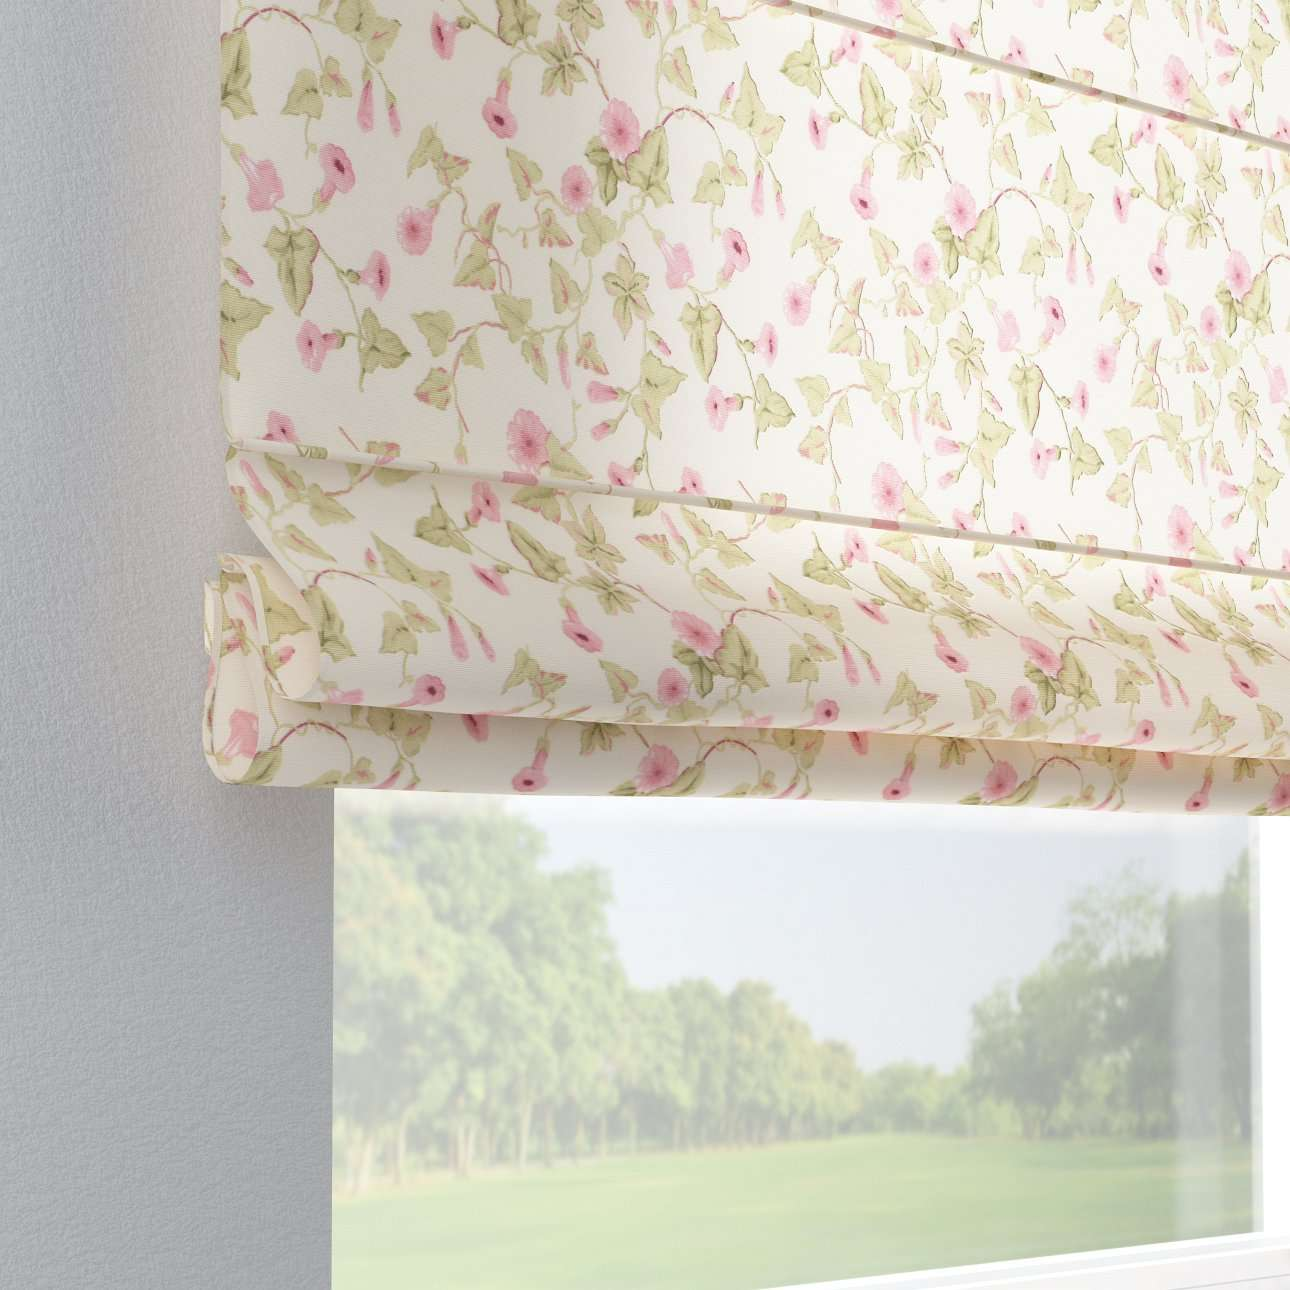 Capri roman blind in collection Mirella, fabric: 140-41